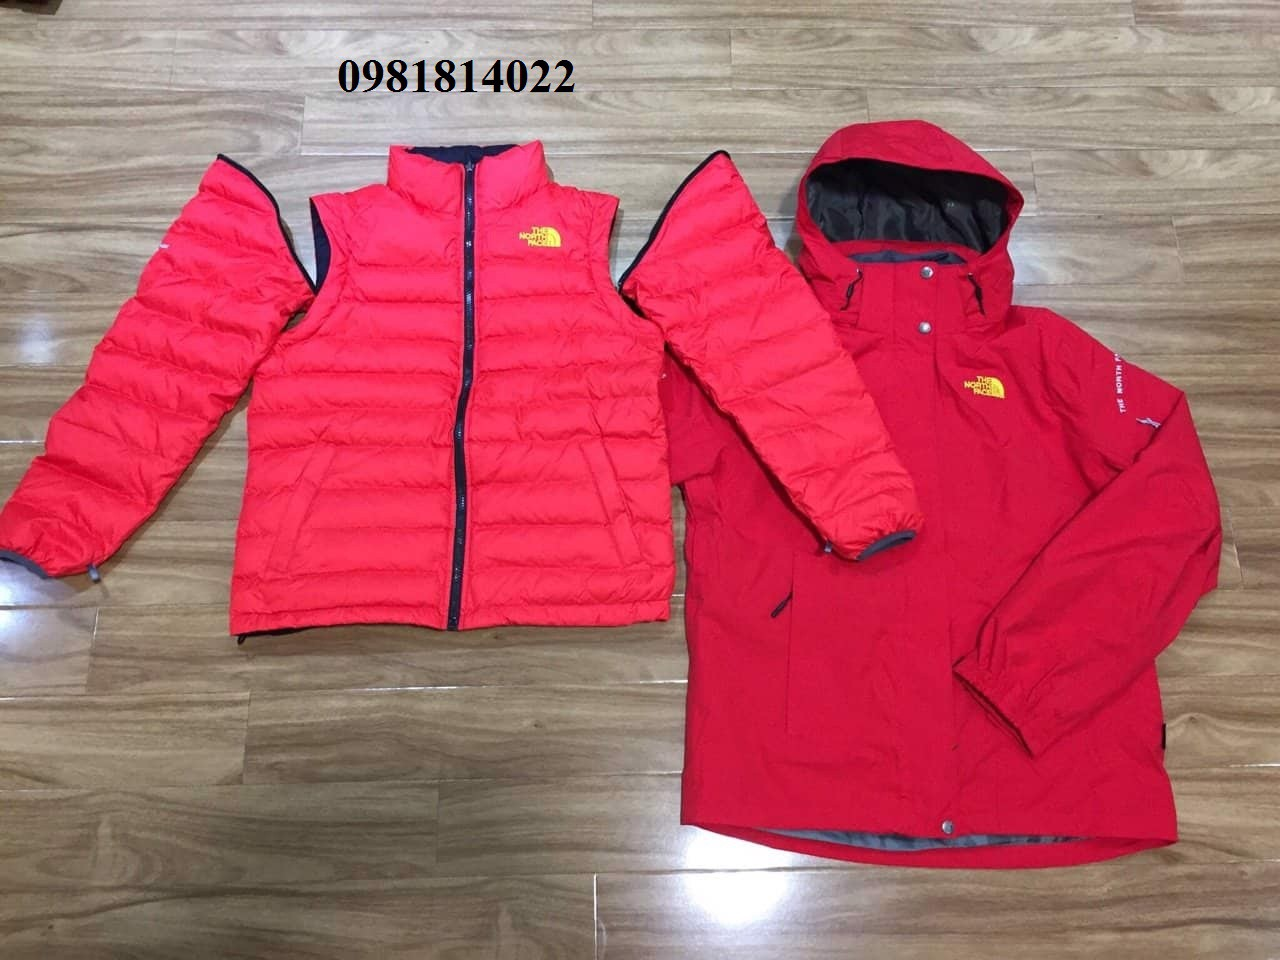 Áo khoác nữ THE NORTH FACE 5 in 1